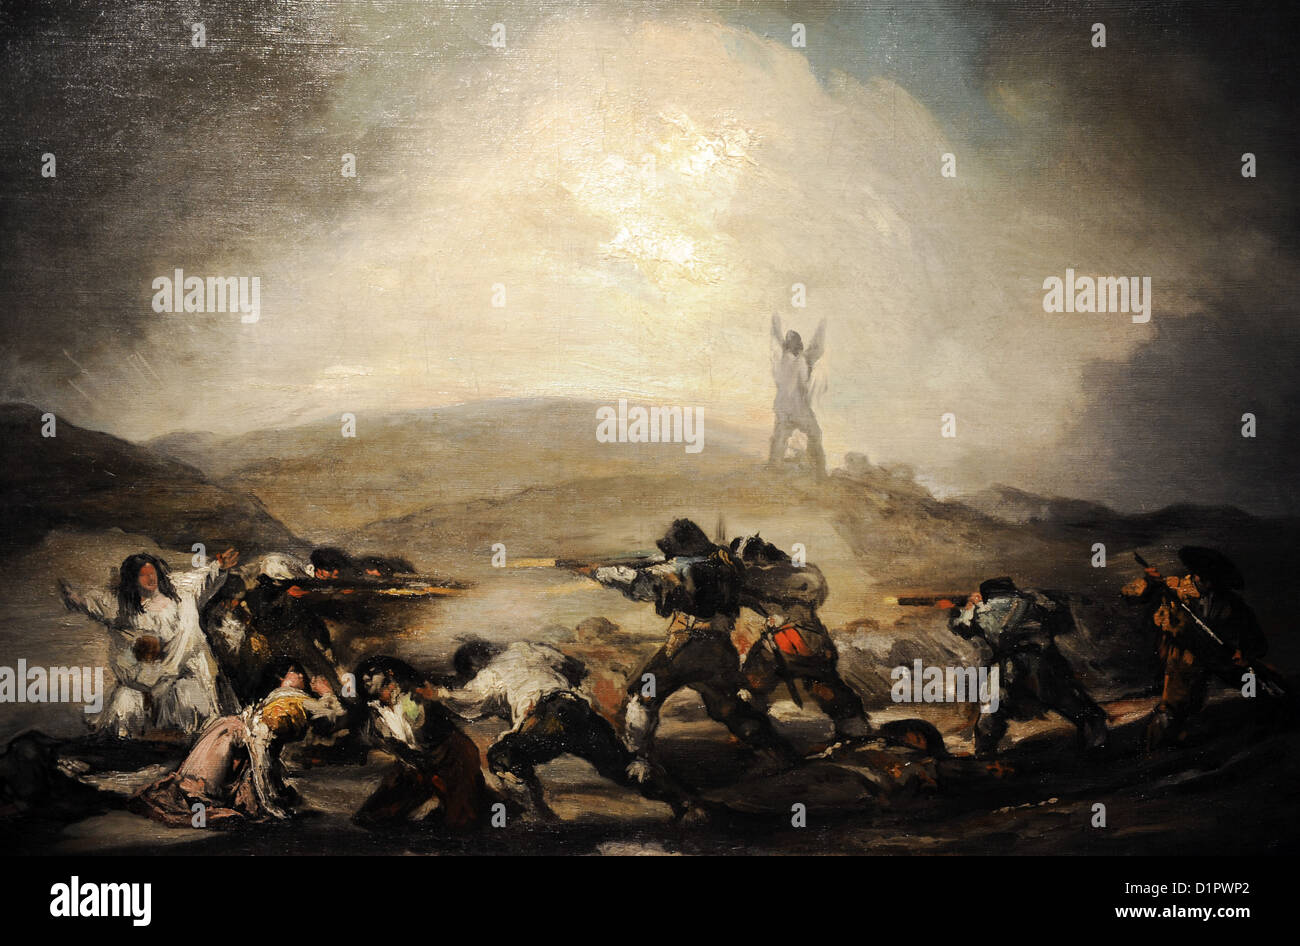 Francisco de Goya (1746-1828). Scene from the Spanish War of Independence, after 1808. Museum of Fine Arts. Budapest. - Stock Image